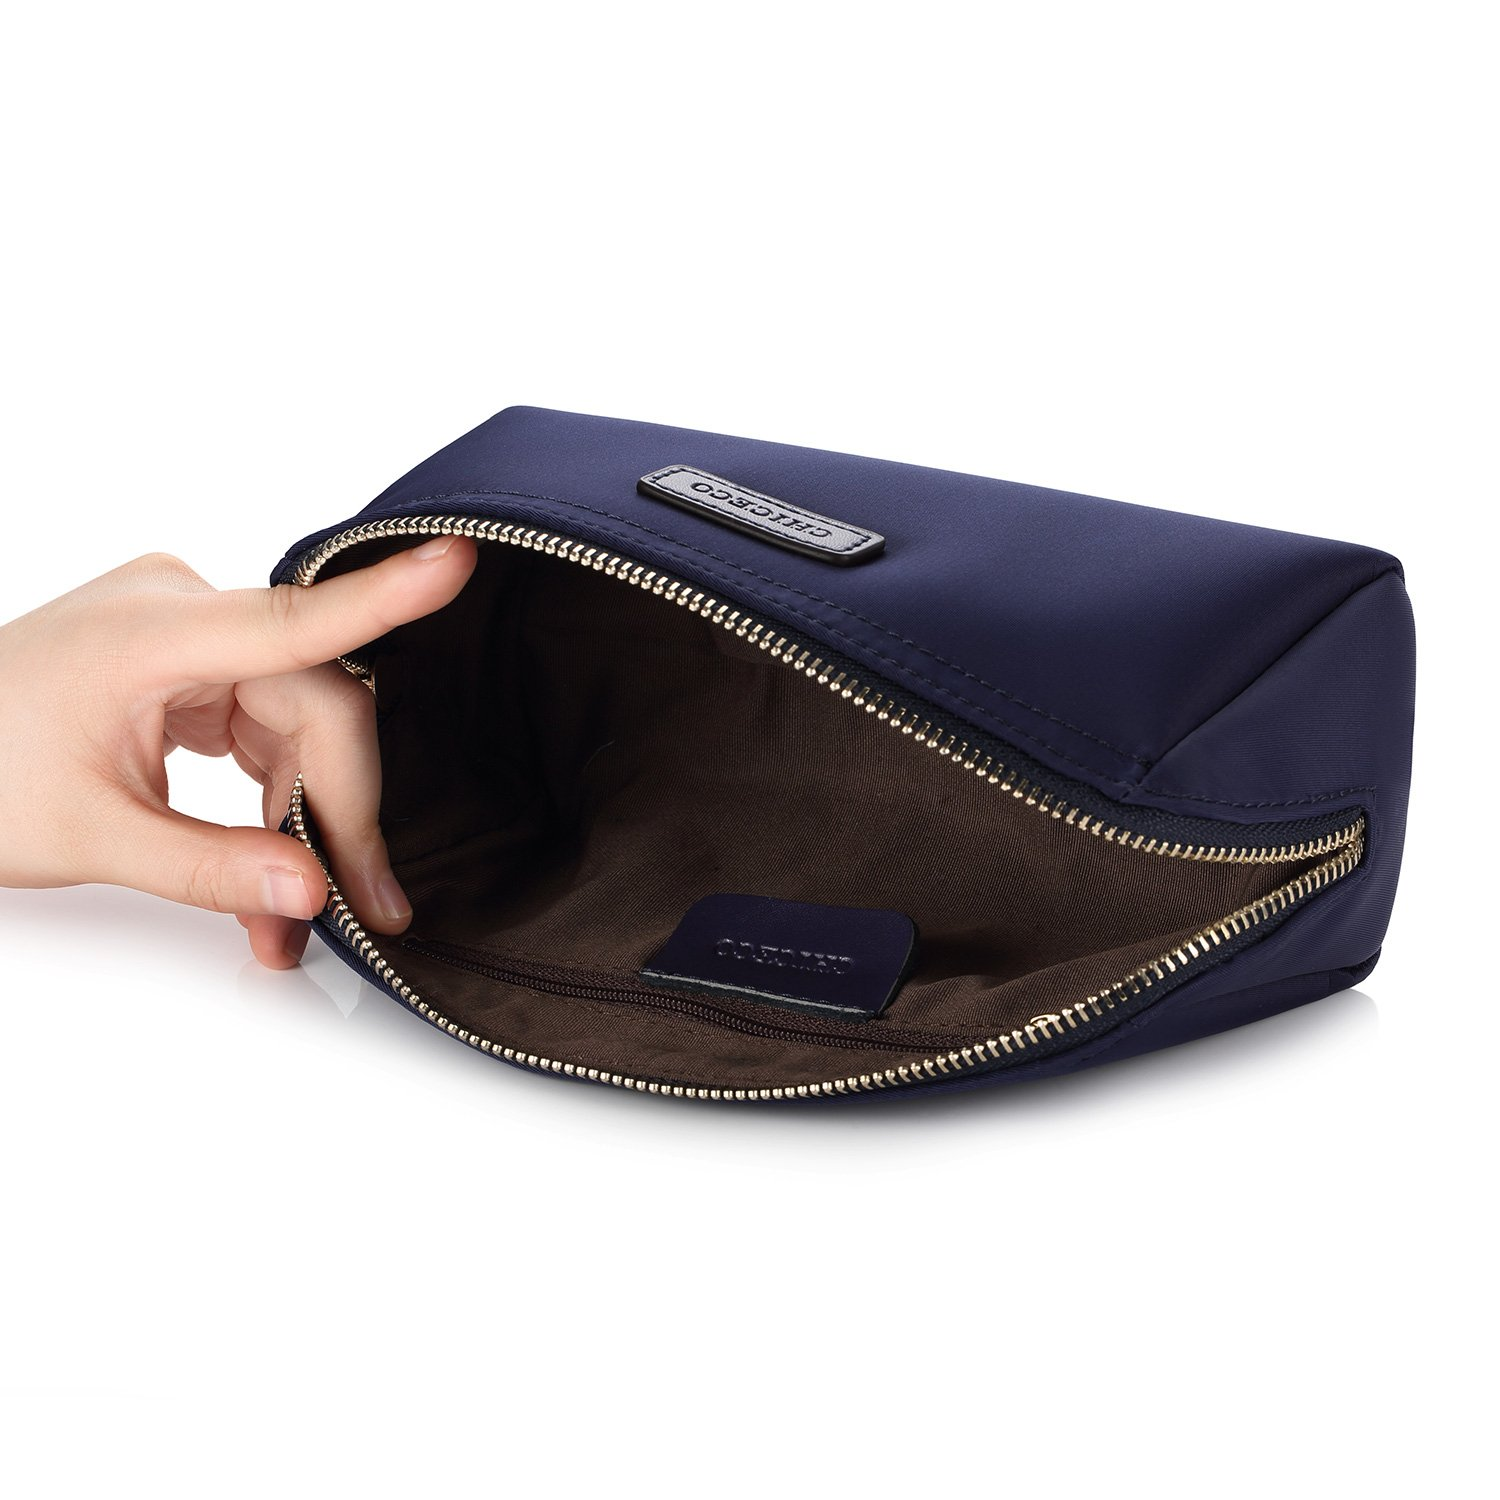 CHICECO Handy Cosmetic Pouch Clutch Makeup Bag - Navy Blue by CHICECO (Image #4)